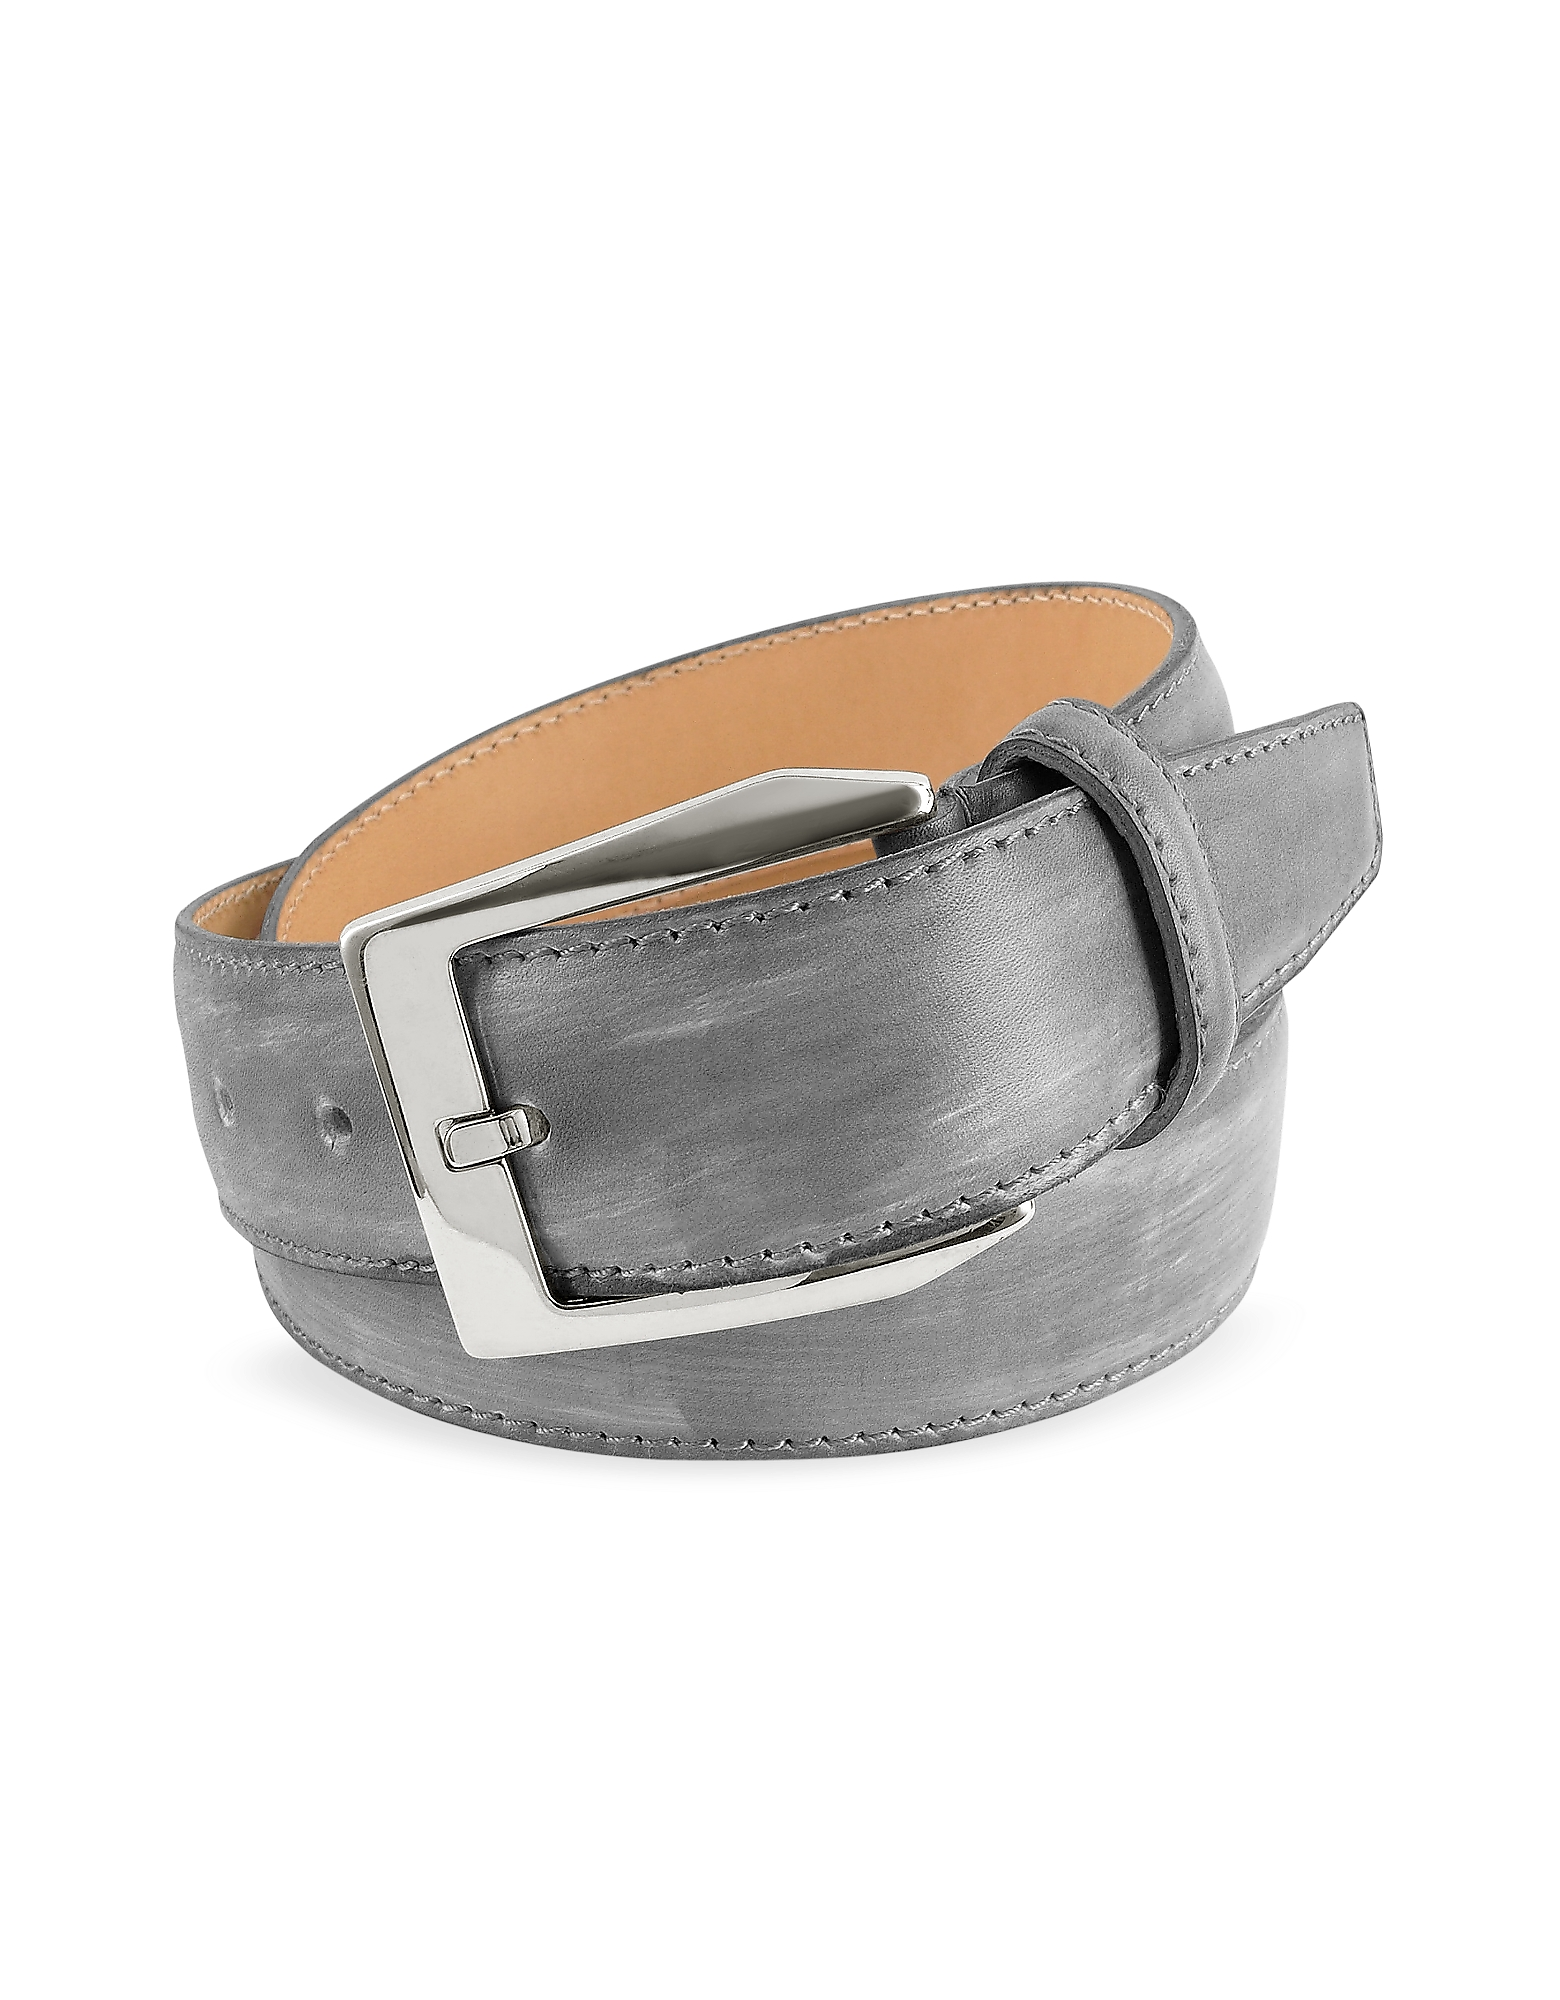 Pakerson Men's Belts, Men's Gray Hand Painted Italian Leather Belt